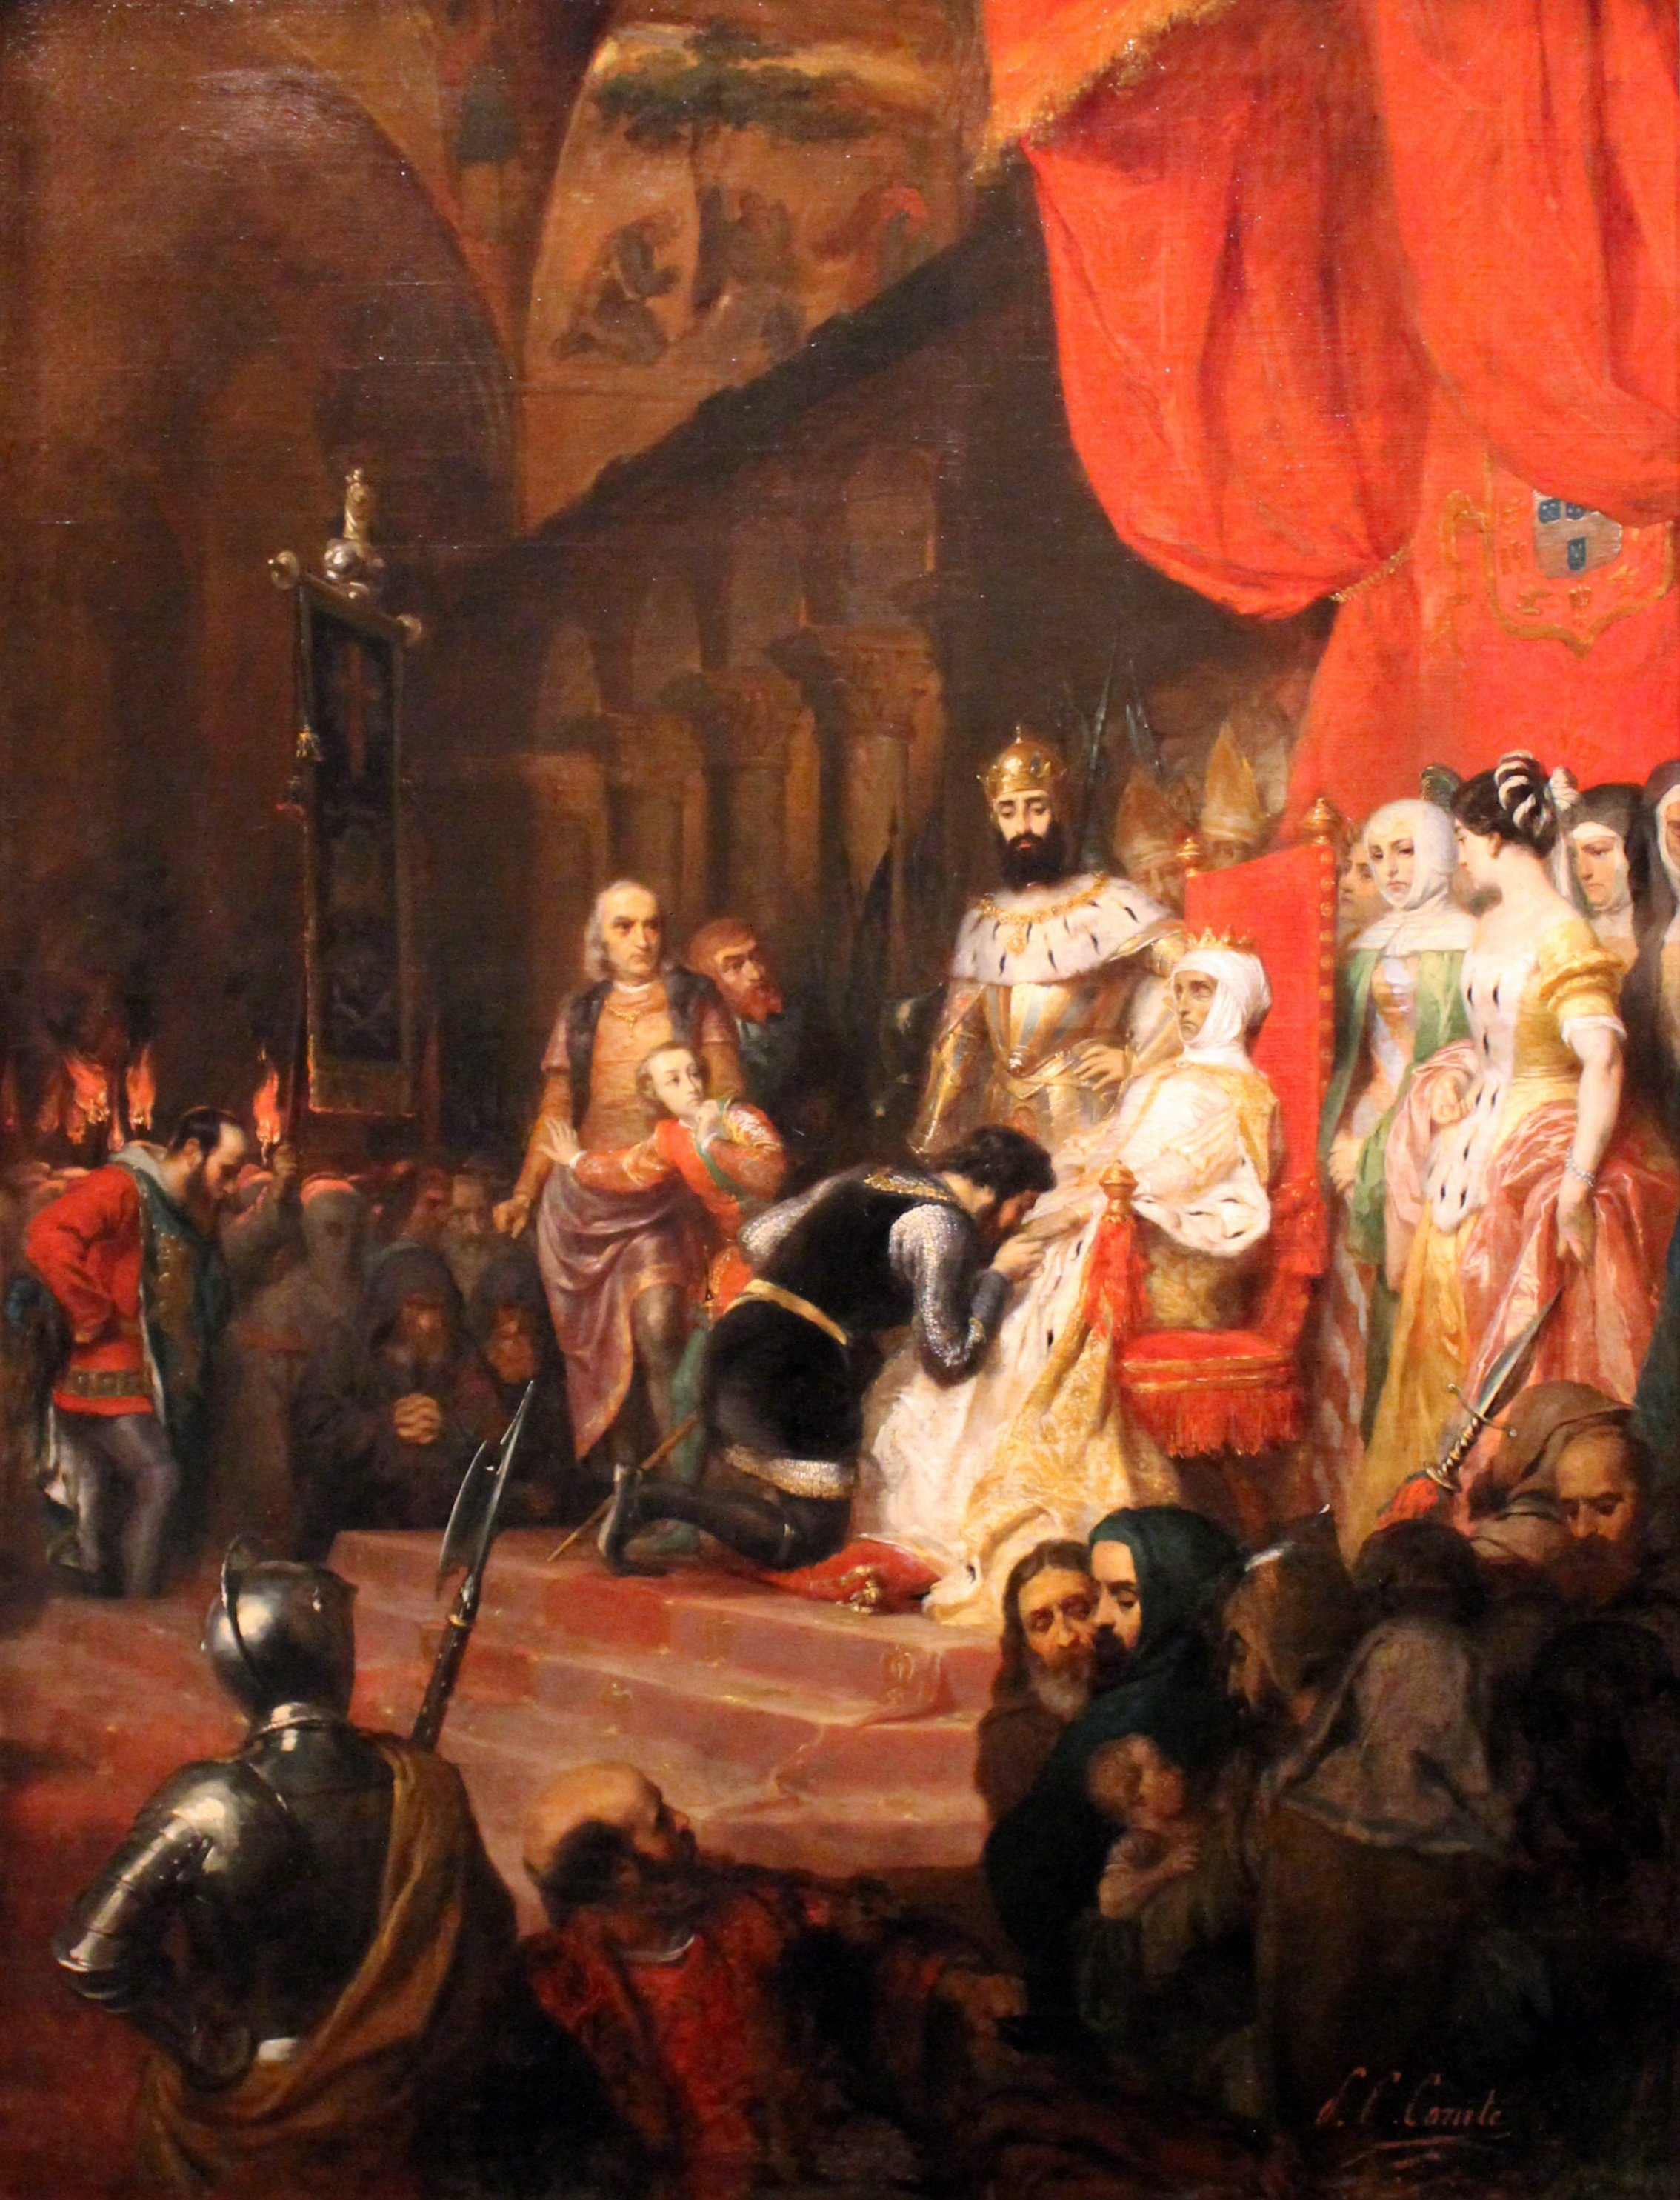 6 Of The Most Brutal Acts Of Revenge In History